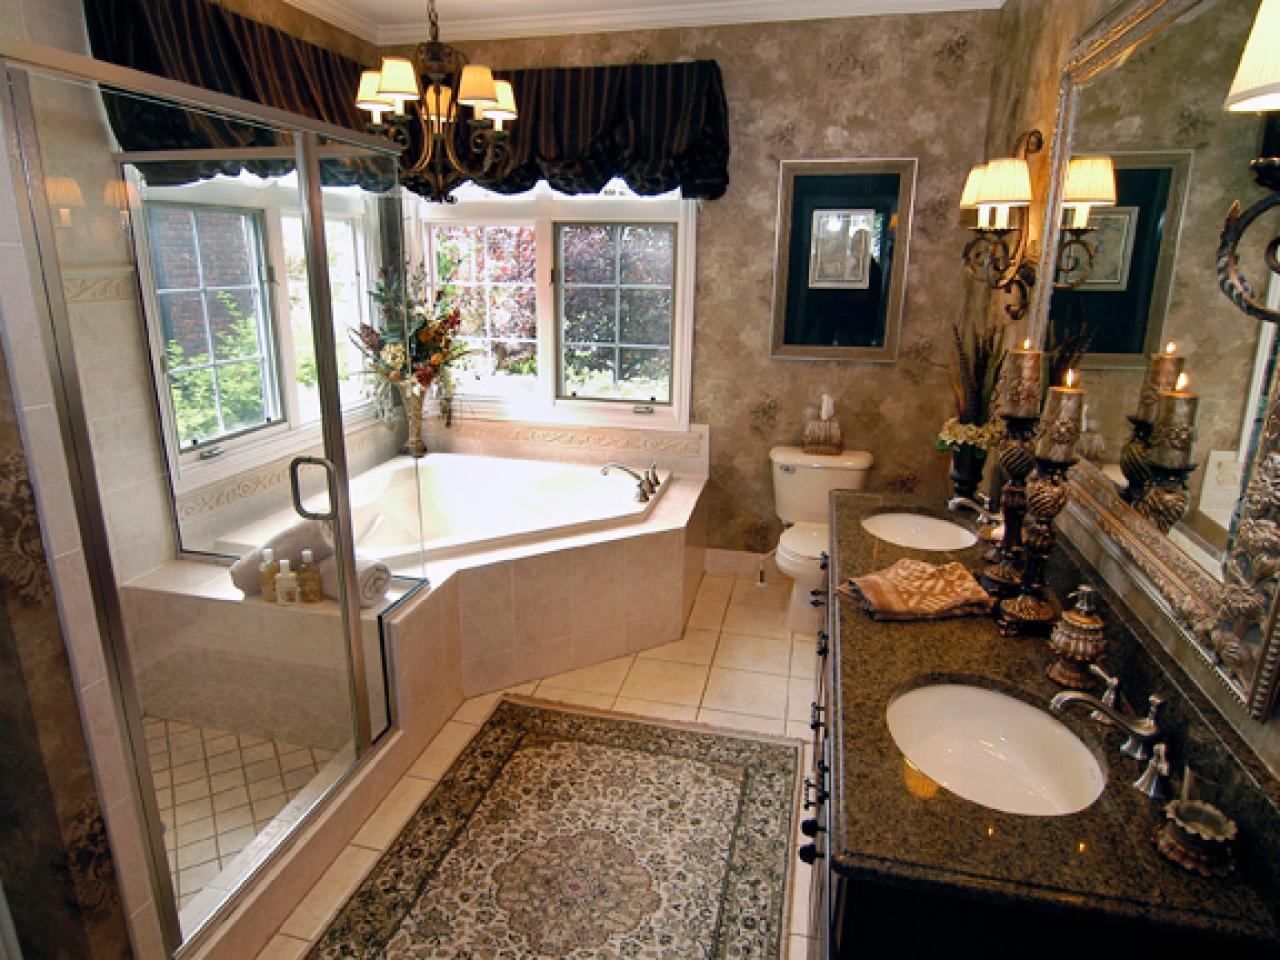 Bathroom designs for small master bathrooms - Showers With Grab Bars